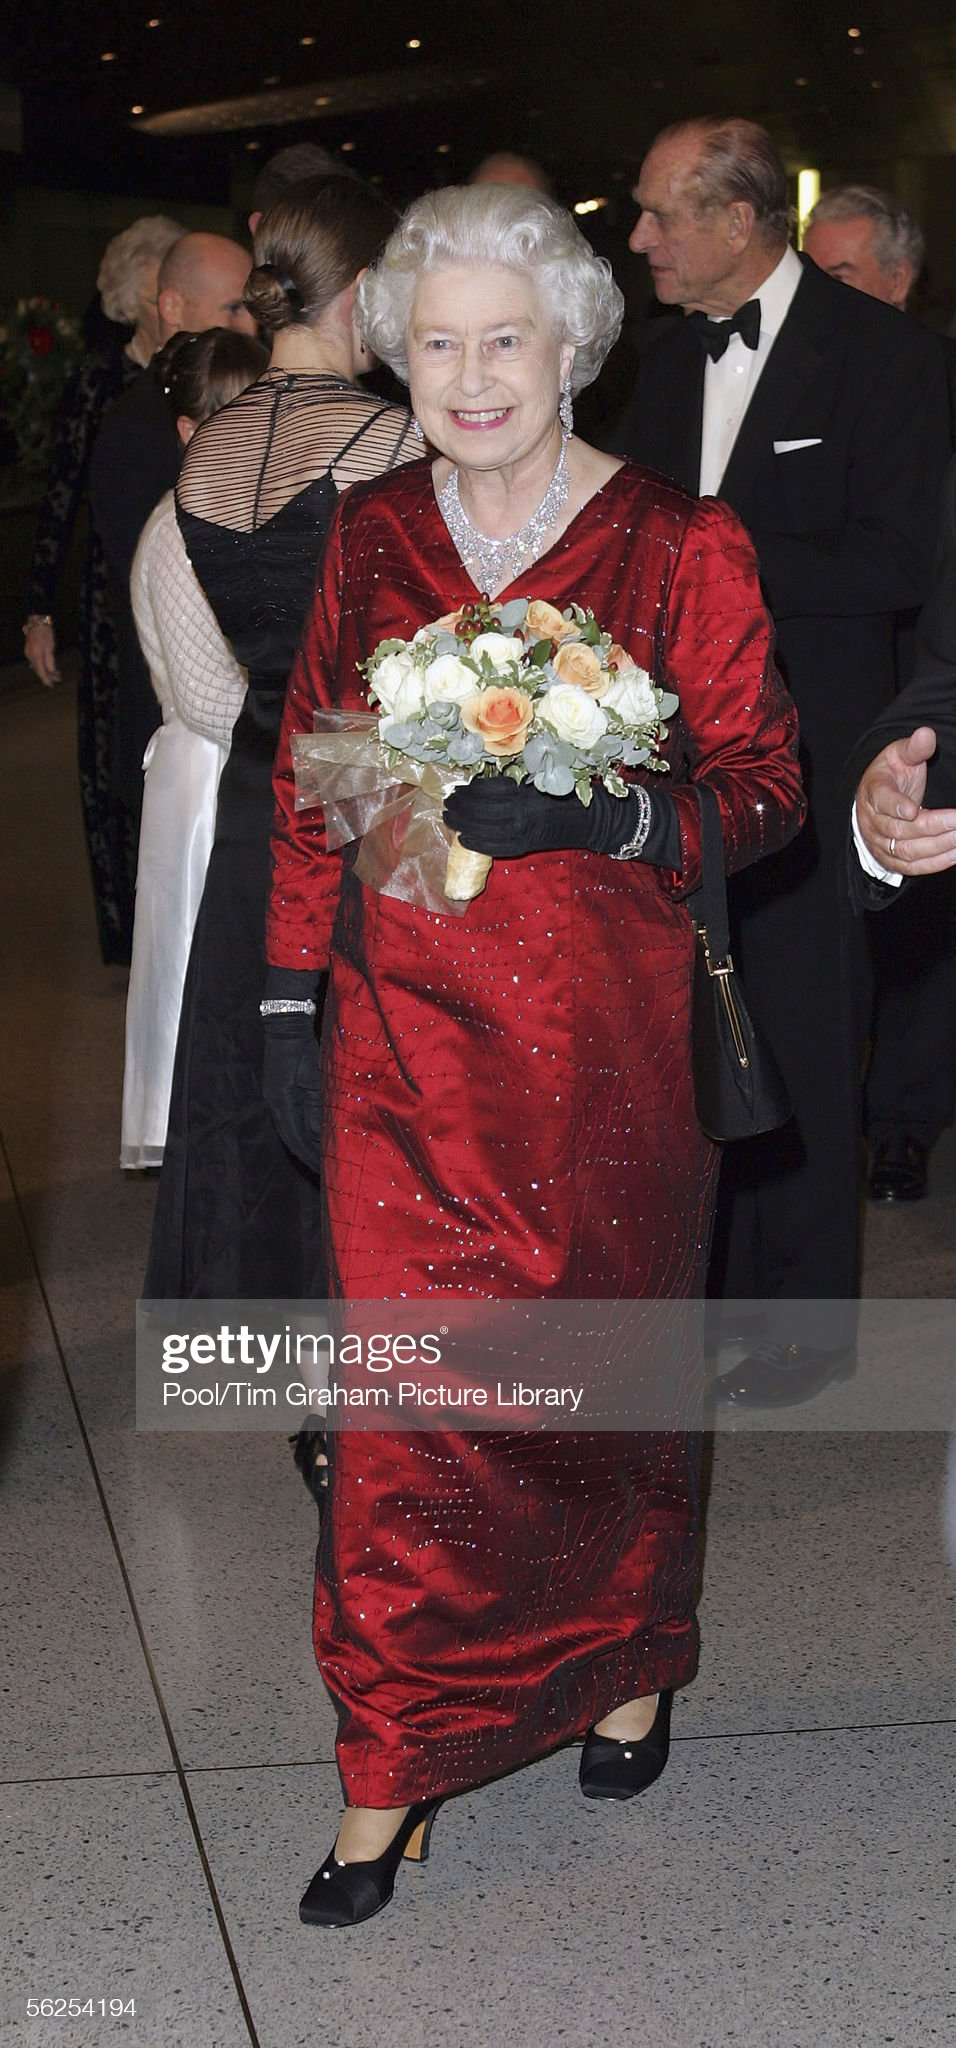 Queen Elizabeth II Attends Royal Variety Performance : News Photo